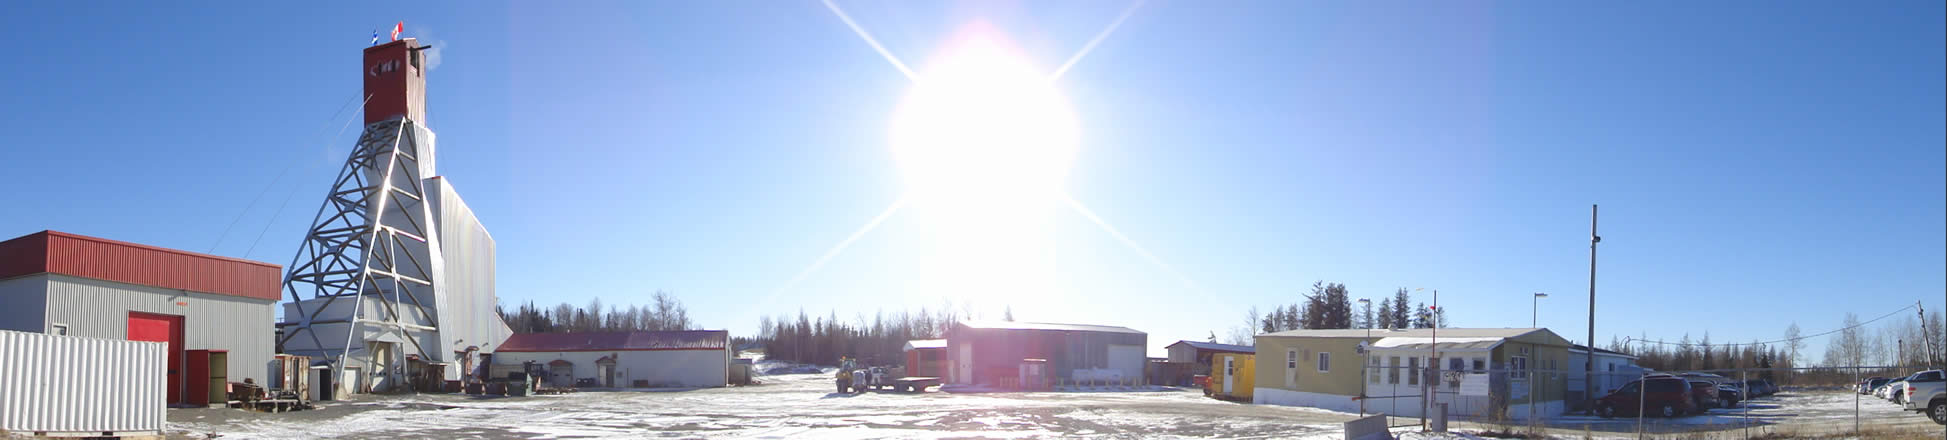 CDPQ Invests $5 Million In Monarch Gold To Support The Potential Re-Opening Of The Beaufor Mine